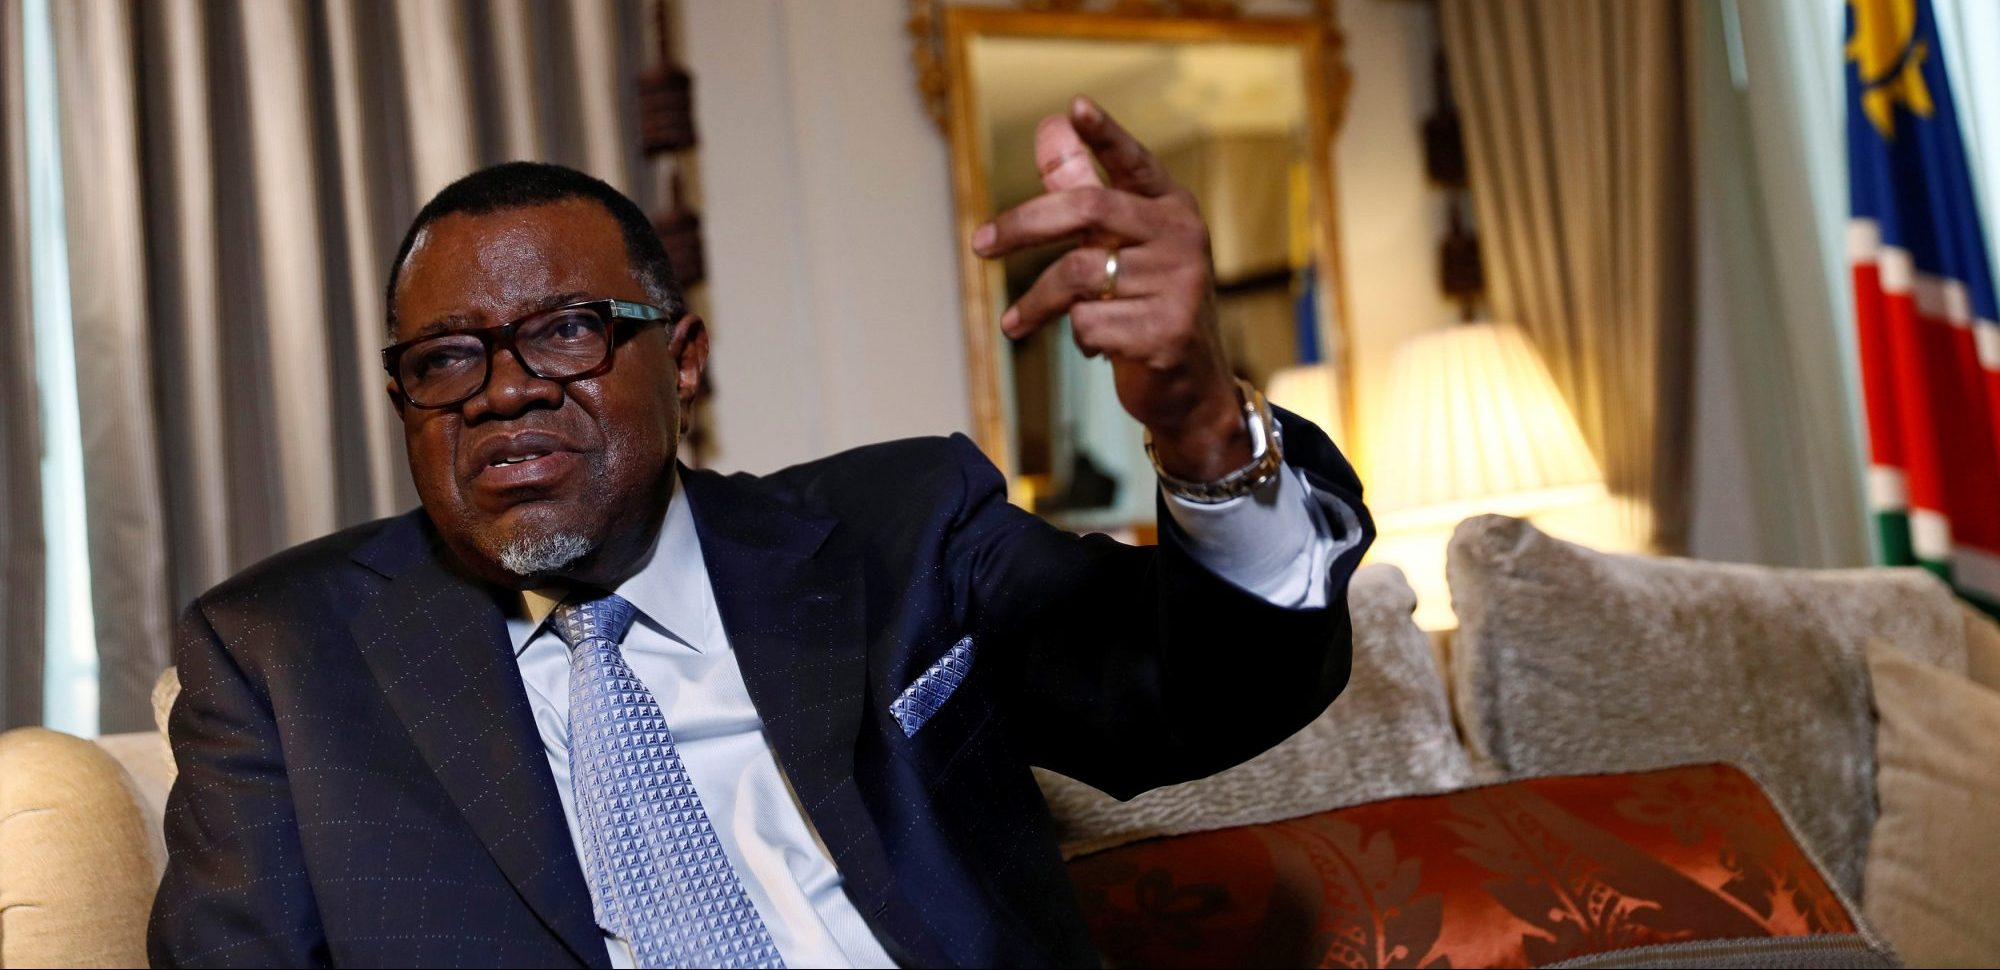 Namibian president caught in fresh fishing corruption allegations